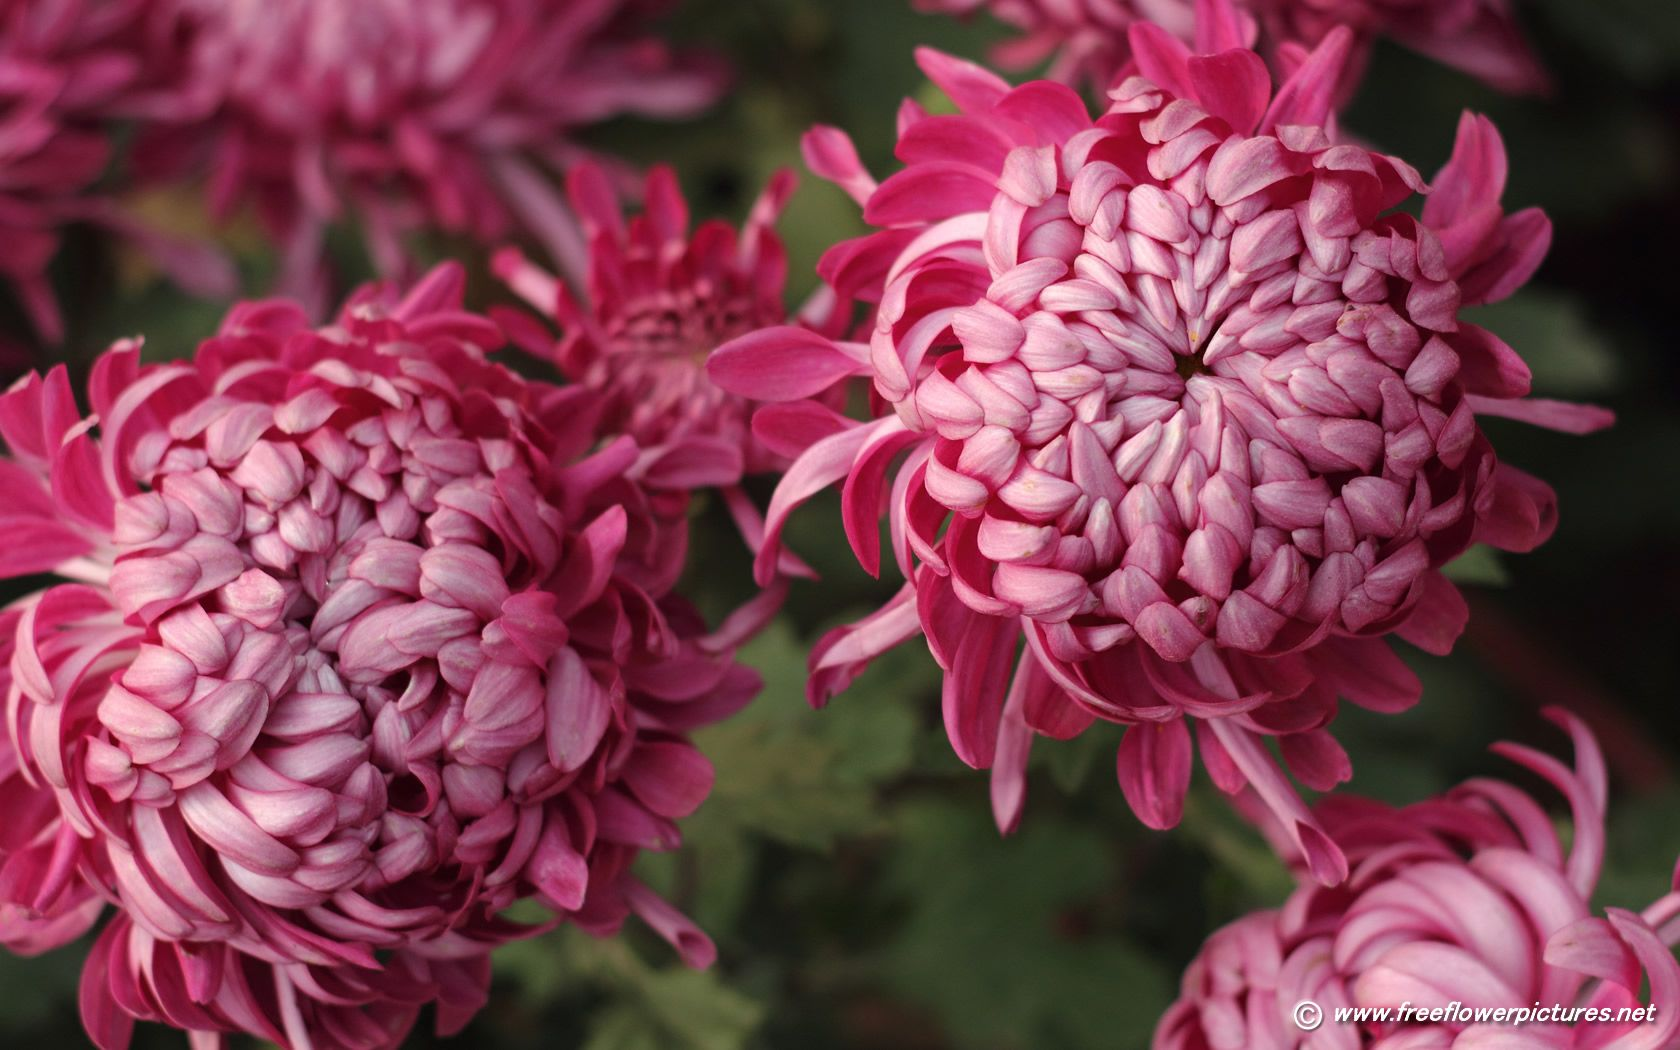 Chrysanthemum Click The Above Thumbnail To View Large Images Of Chrysanthemums Chrysanthemum Flower Pictures Chrysanthemum Flower Chrysanthemum